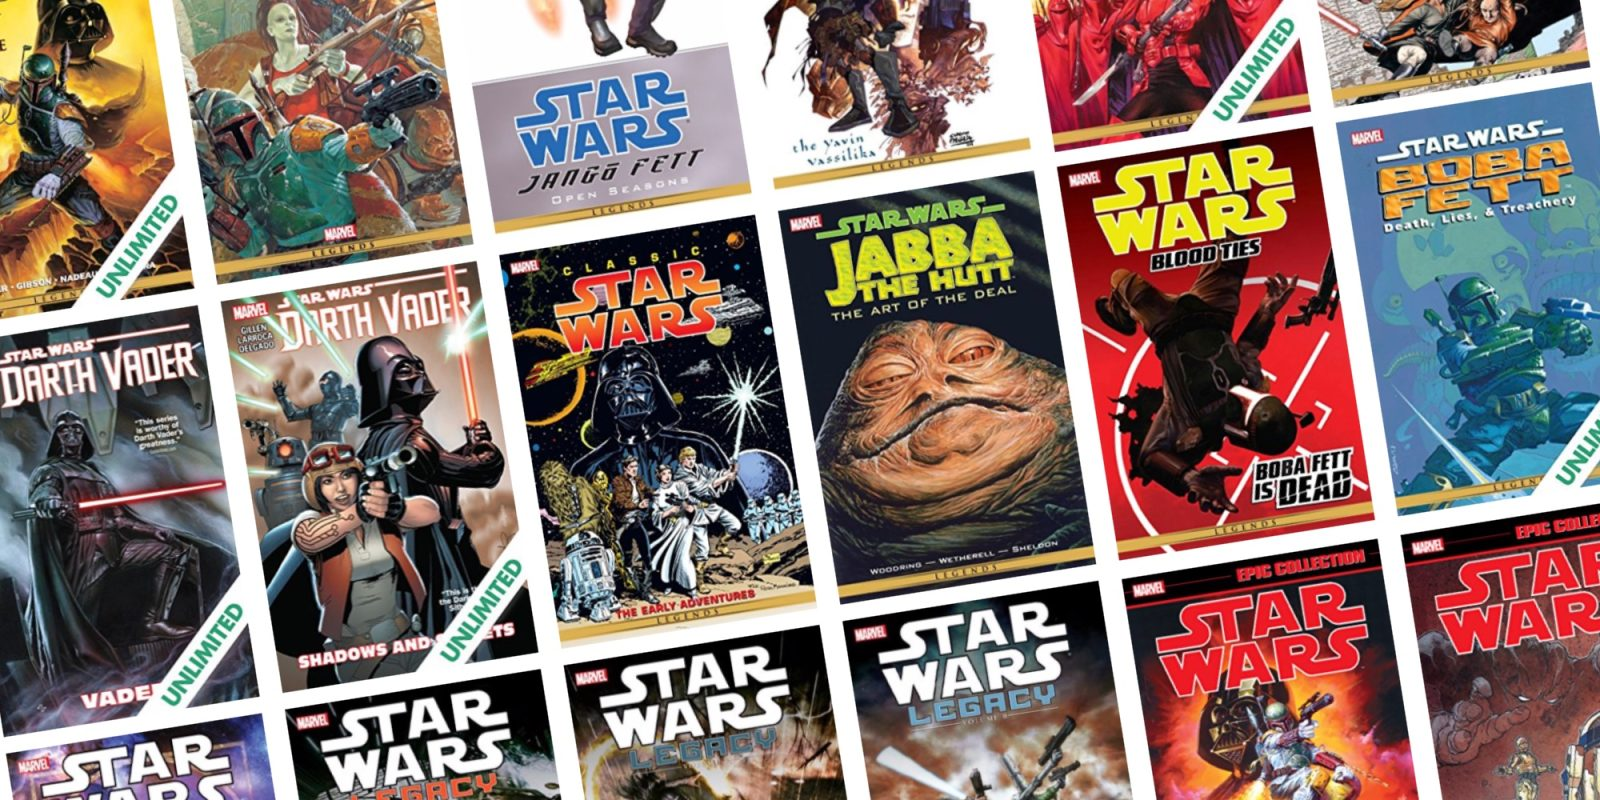 Get ready for The Mandalorian with up to 74% off Star Wars comics from $3